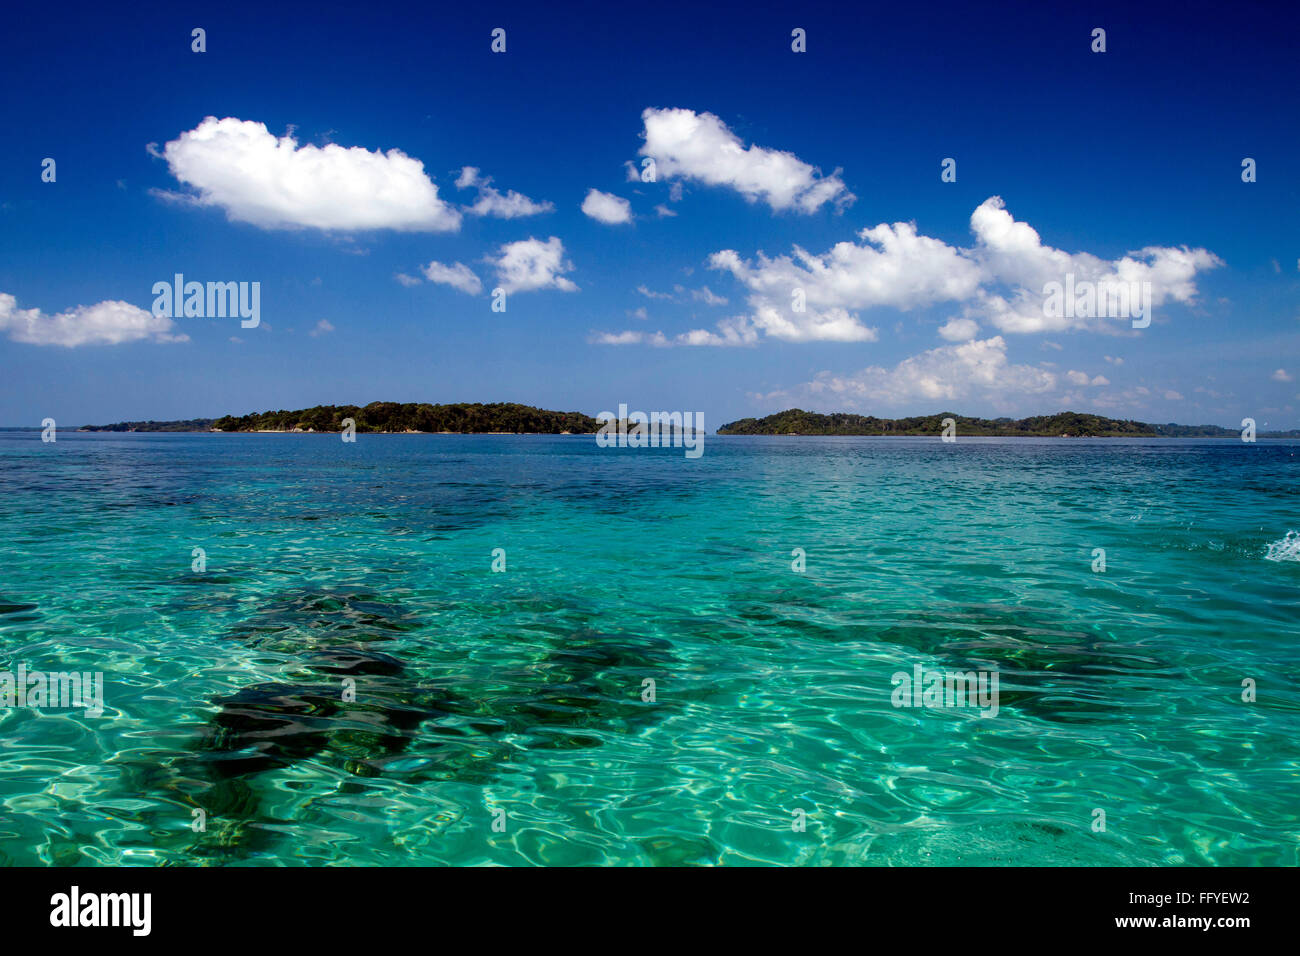 Jolly Buoy Island près de Wandoor Asie Inde Andaman Photo Stock